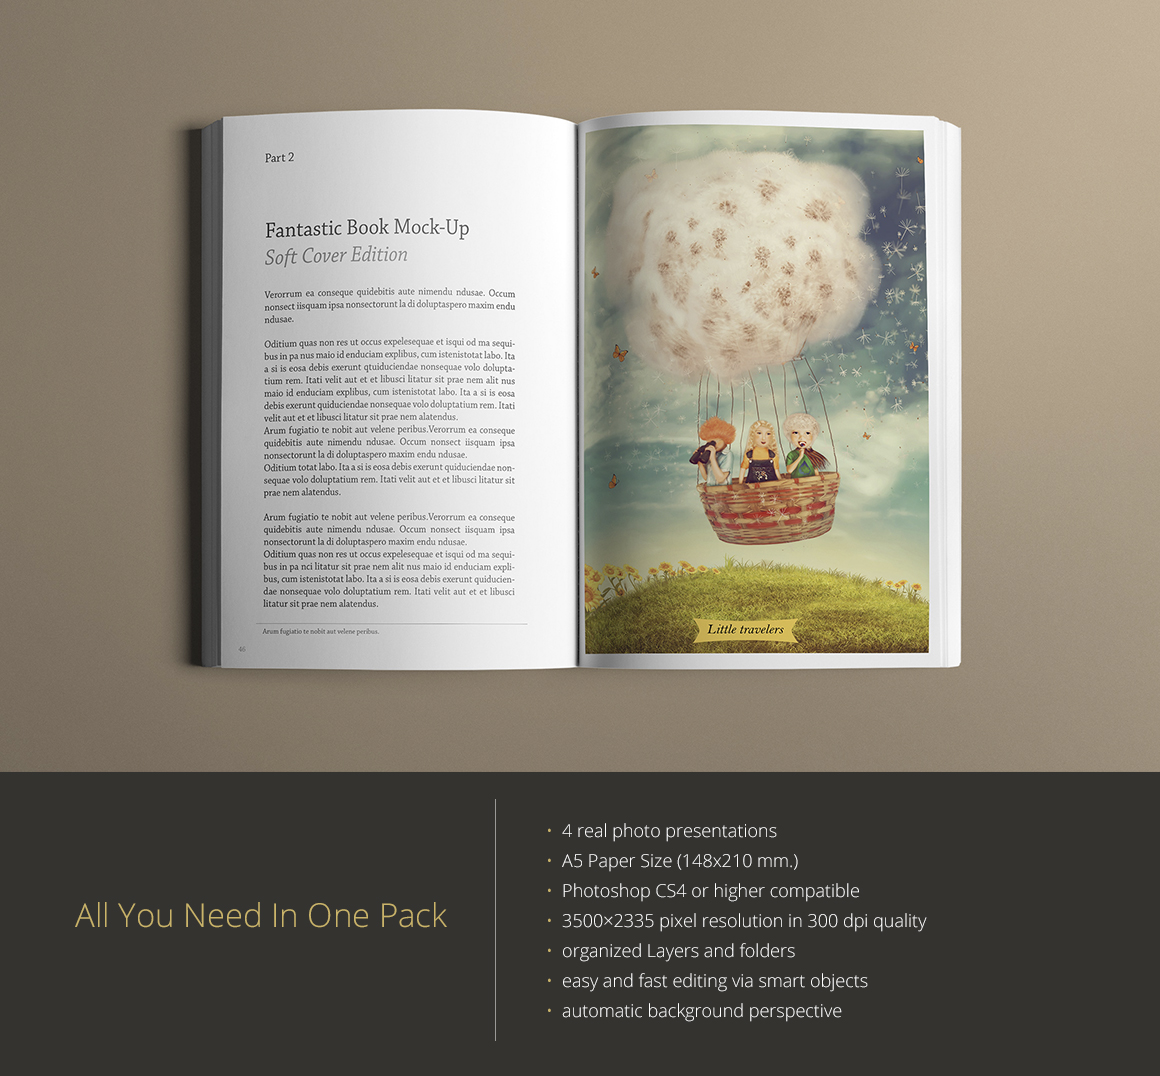 Vintage Soft Cover Book Mock Up : Book mock up soft cover edition product mockups on